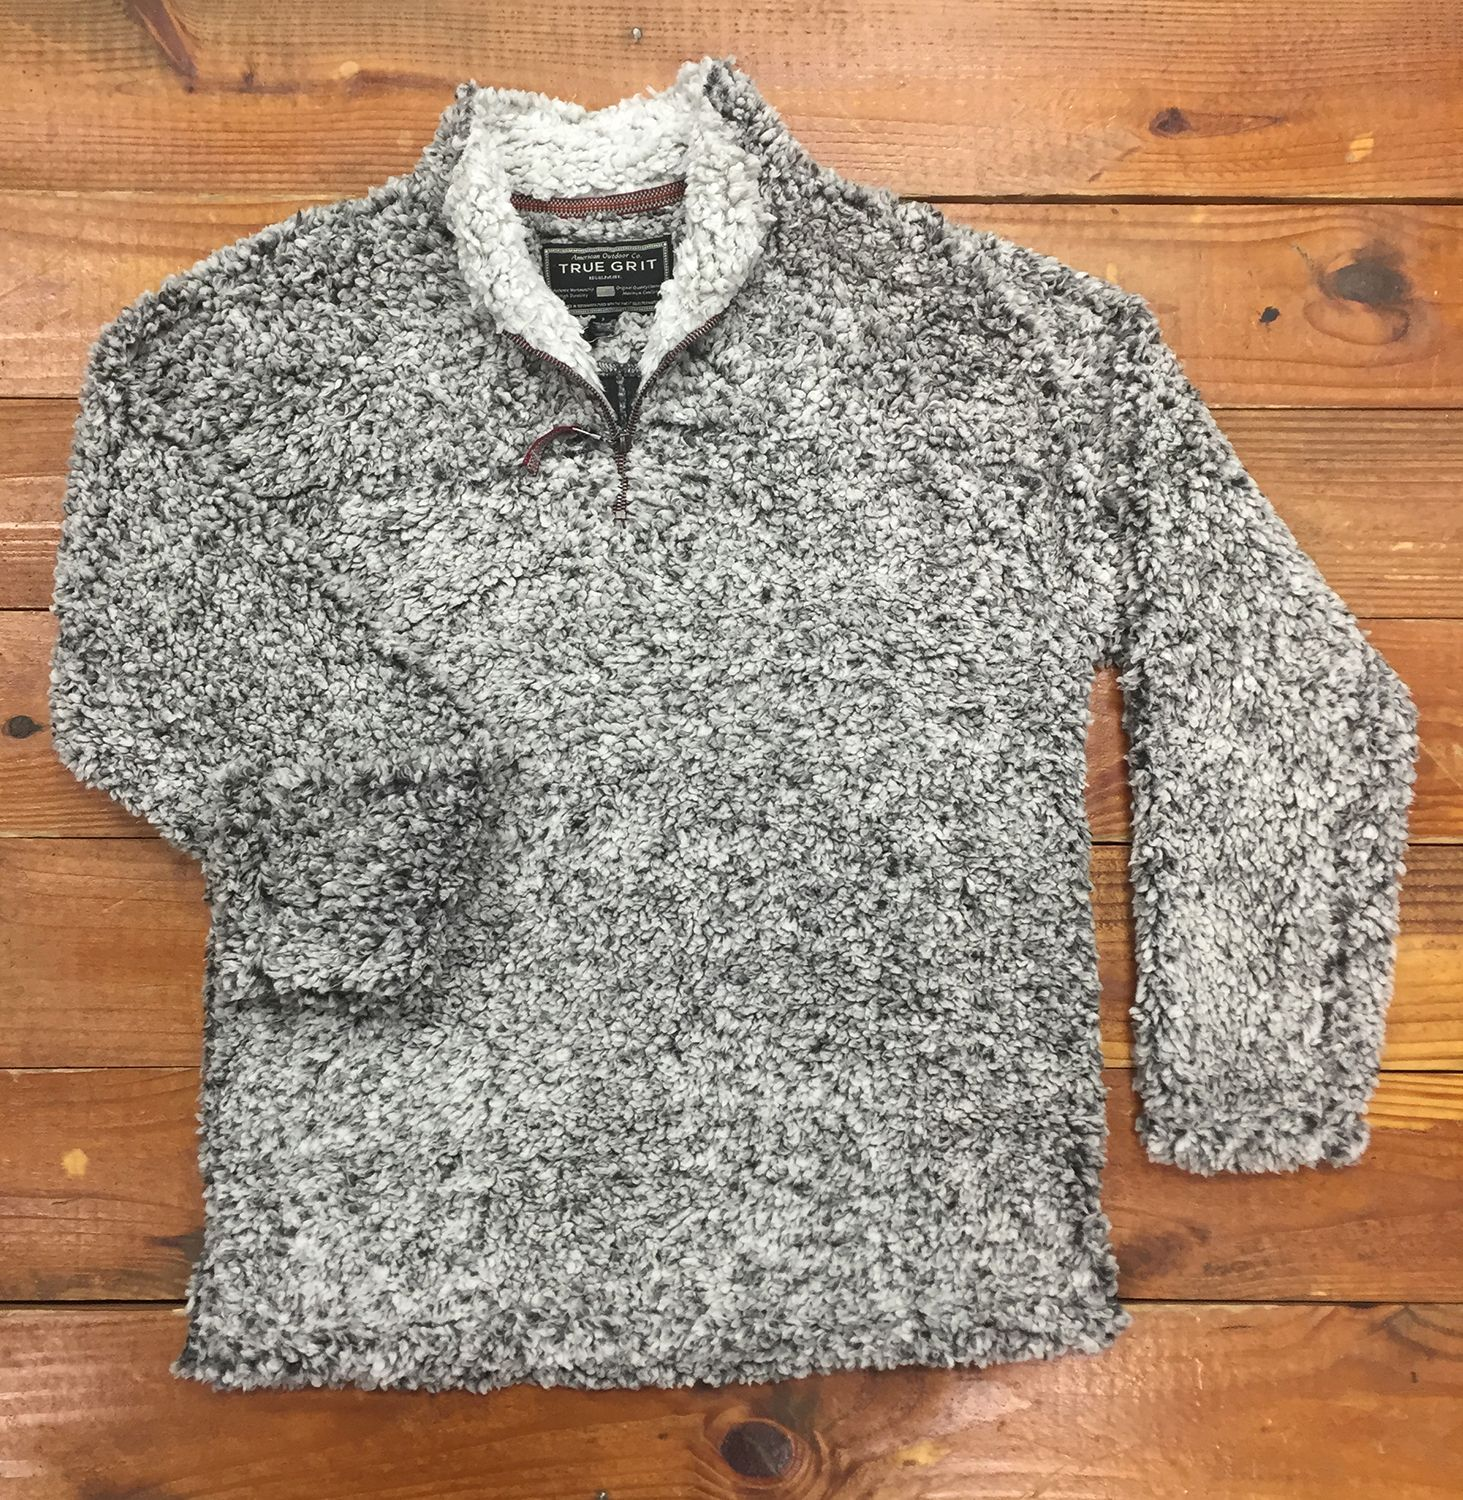 True Grit Frosty Tipped Pile Pullover In Charcoal Cozy To